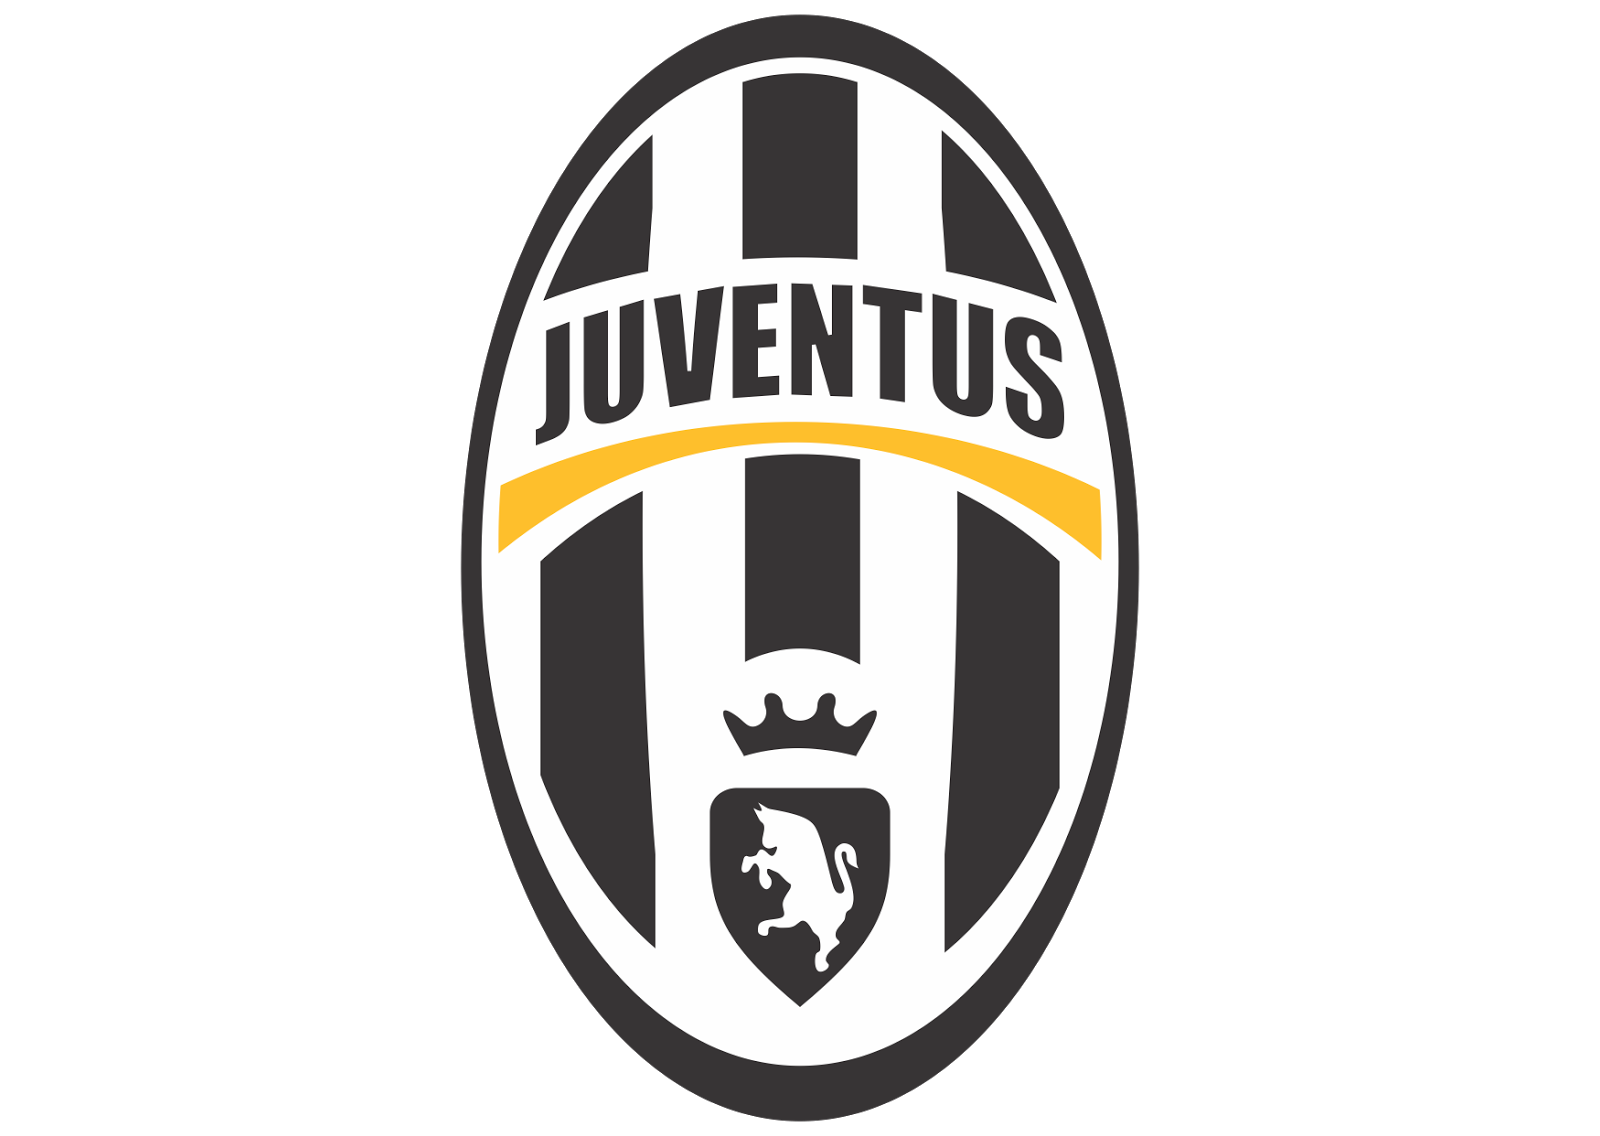 Juventus Logo Vector download free